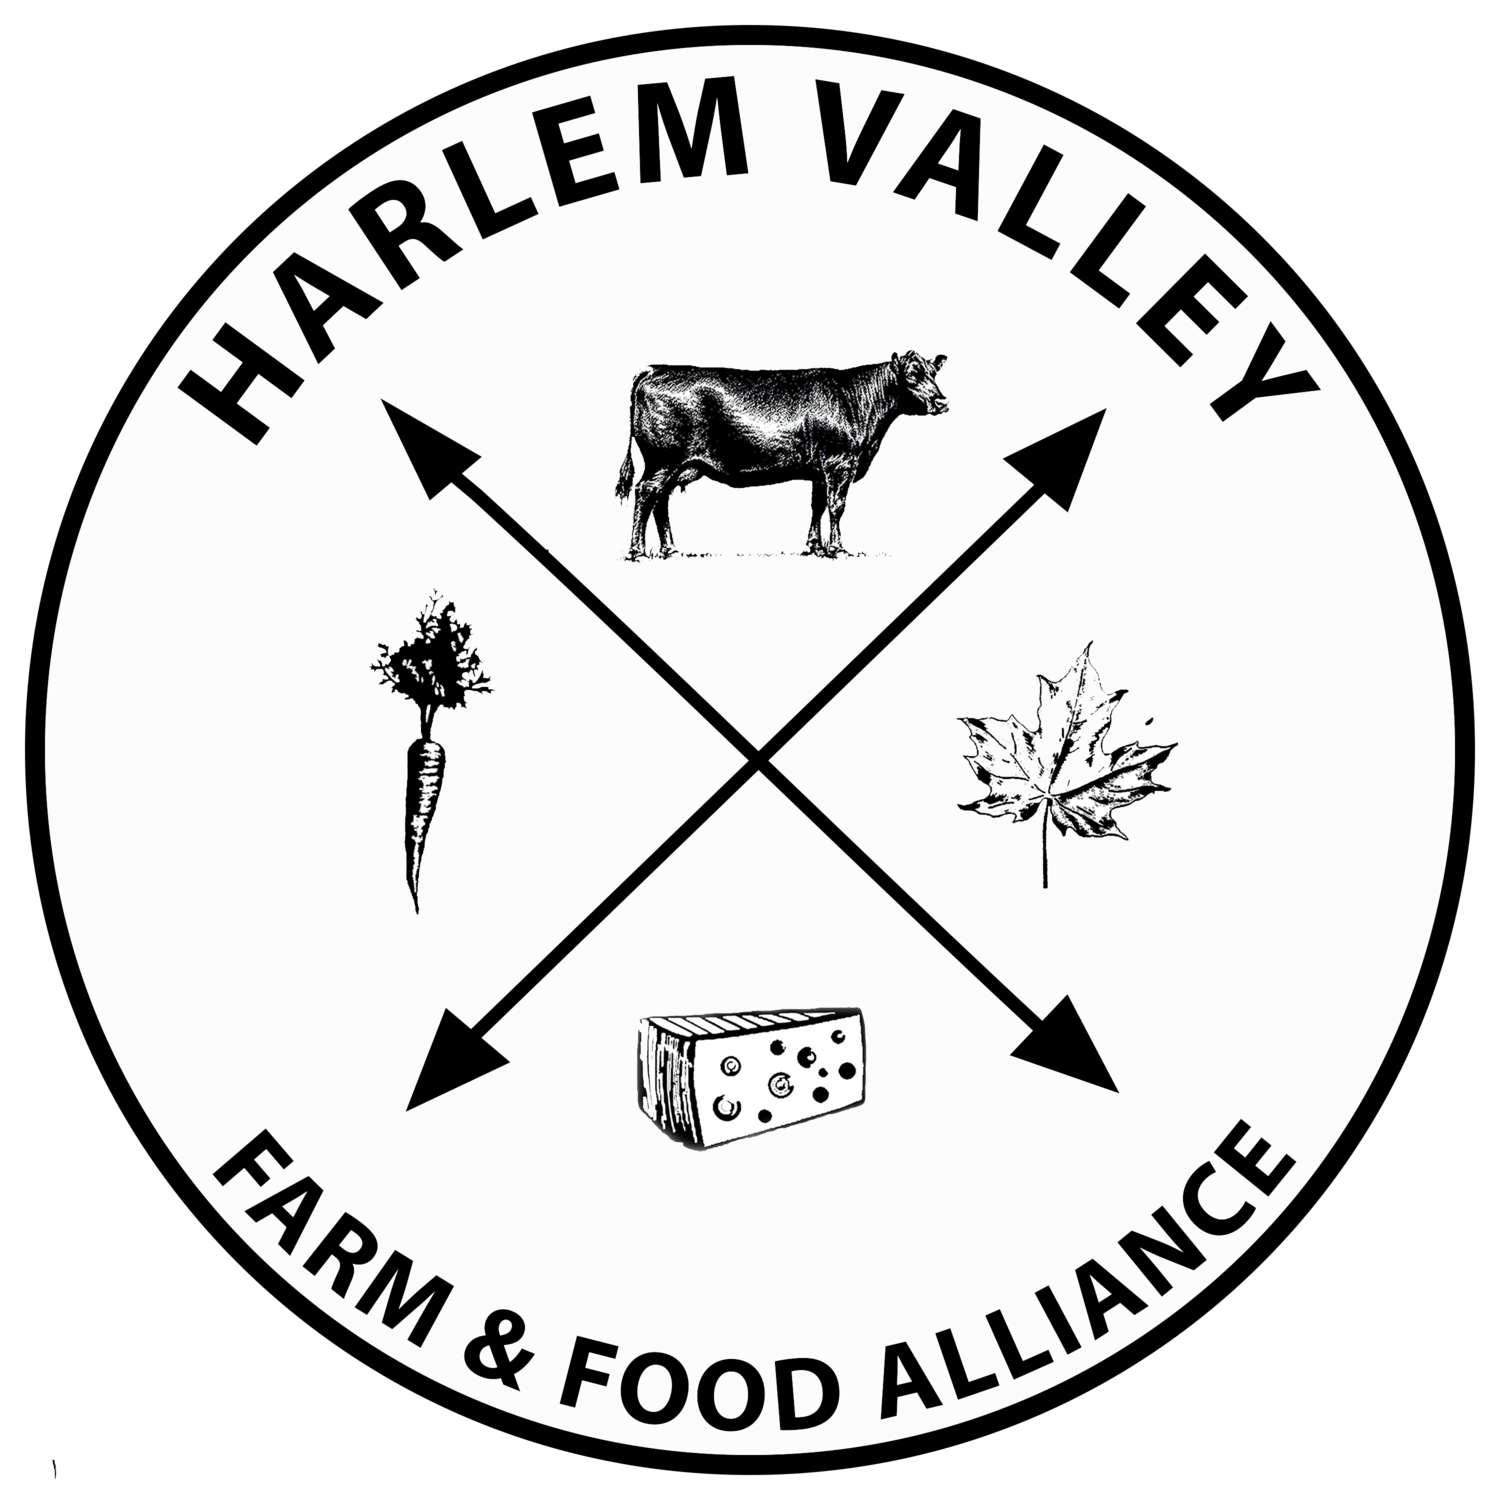 Harlem Valley Farm and Food Alliance